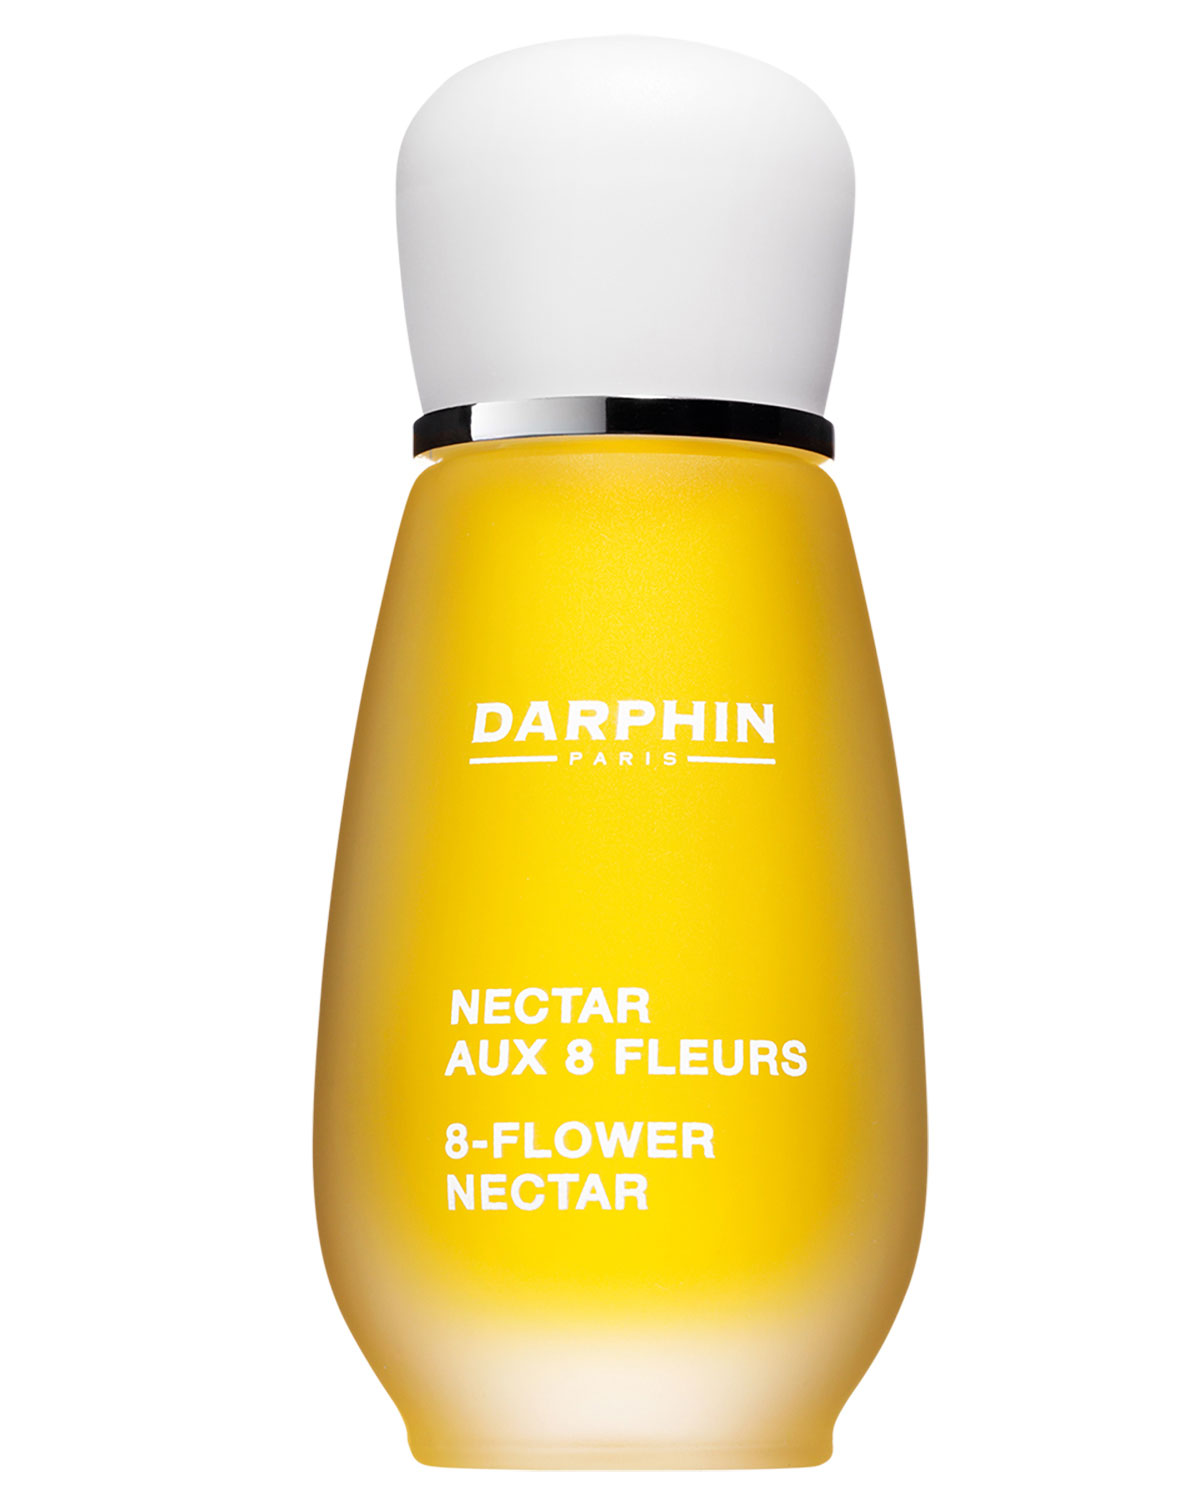 DARPHIN 8-Flower Nectar, 0.5 Oz./ 15 Ml